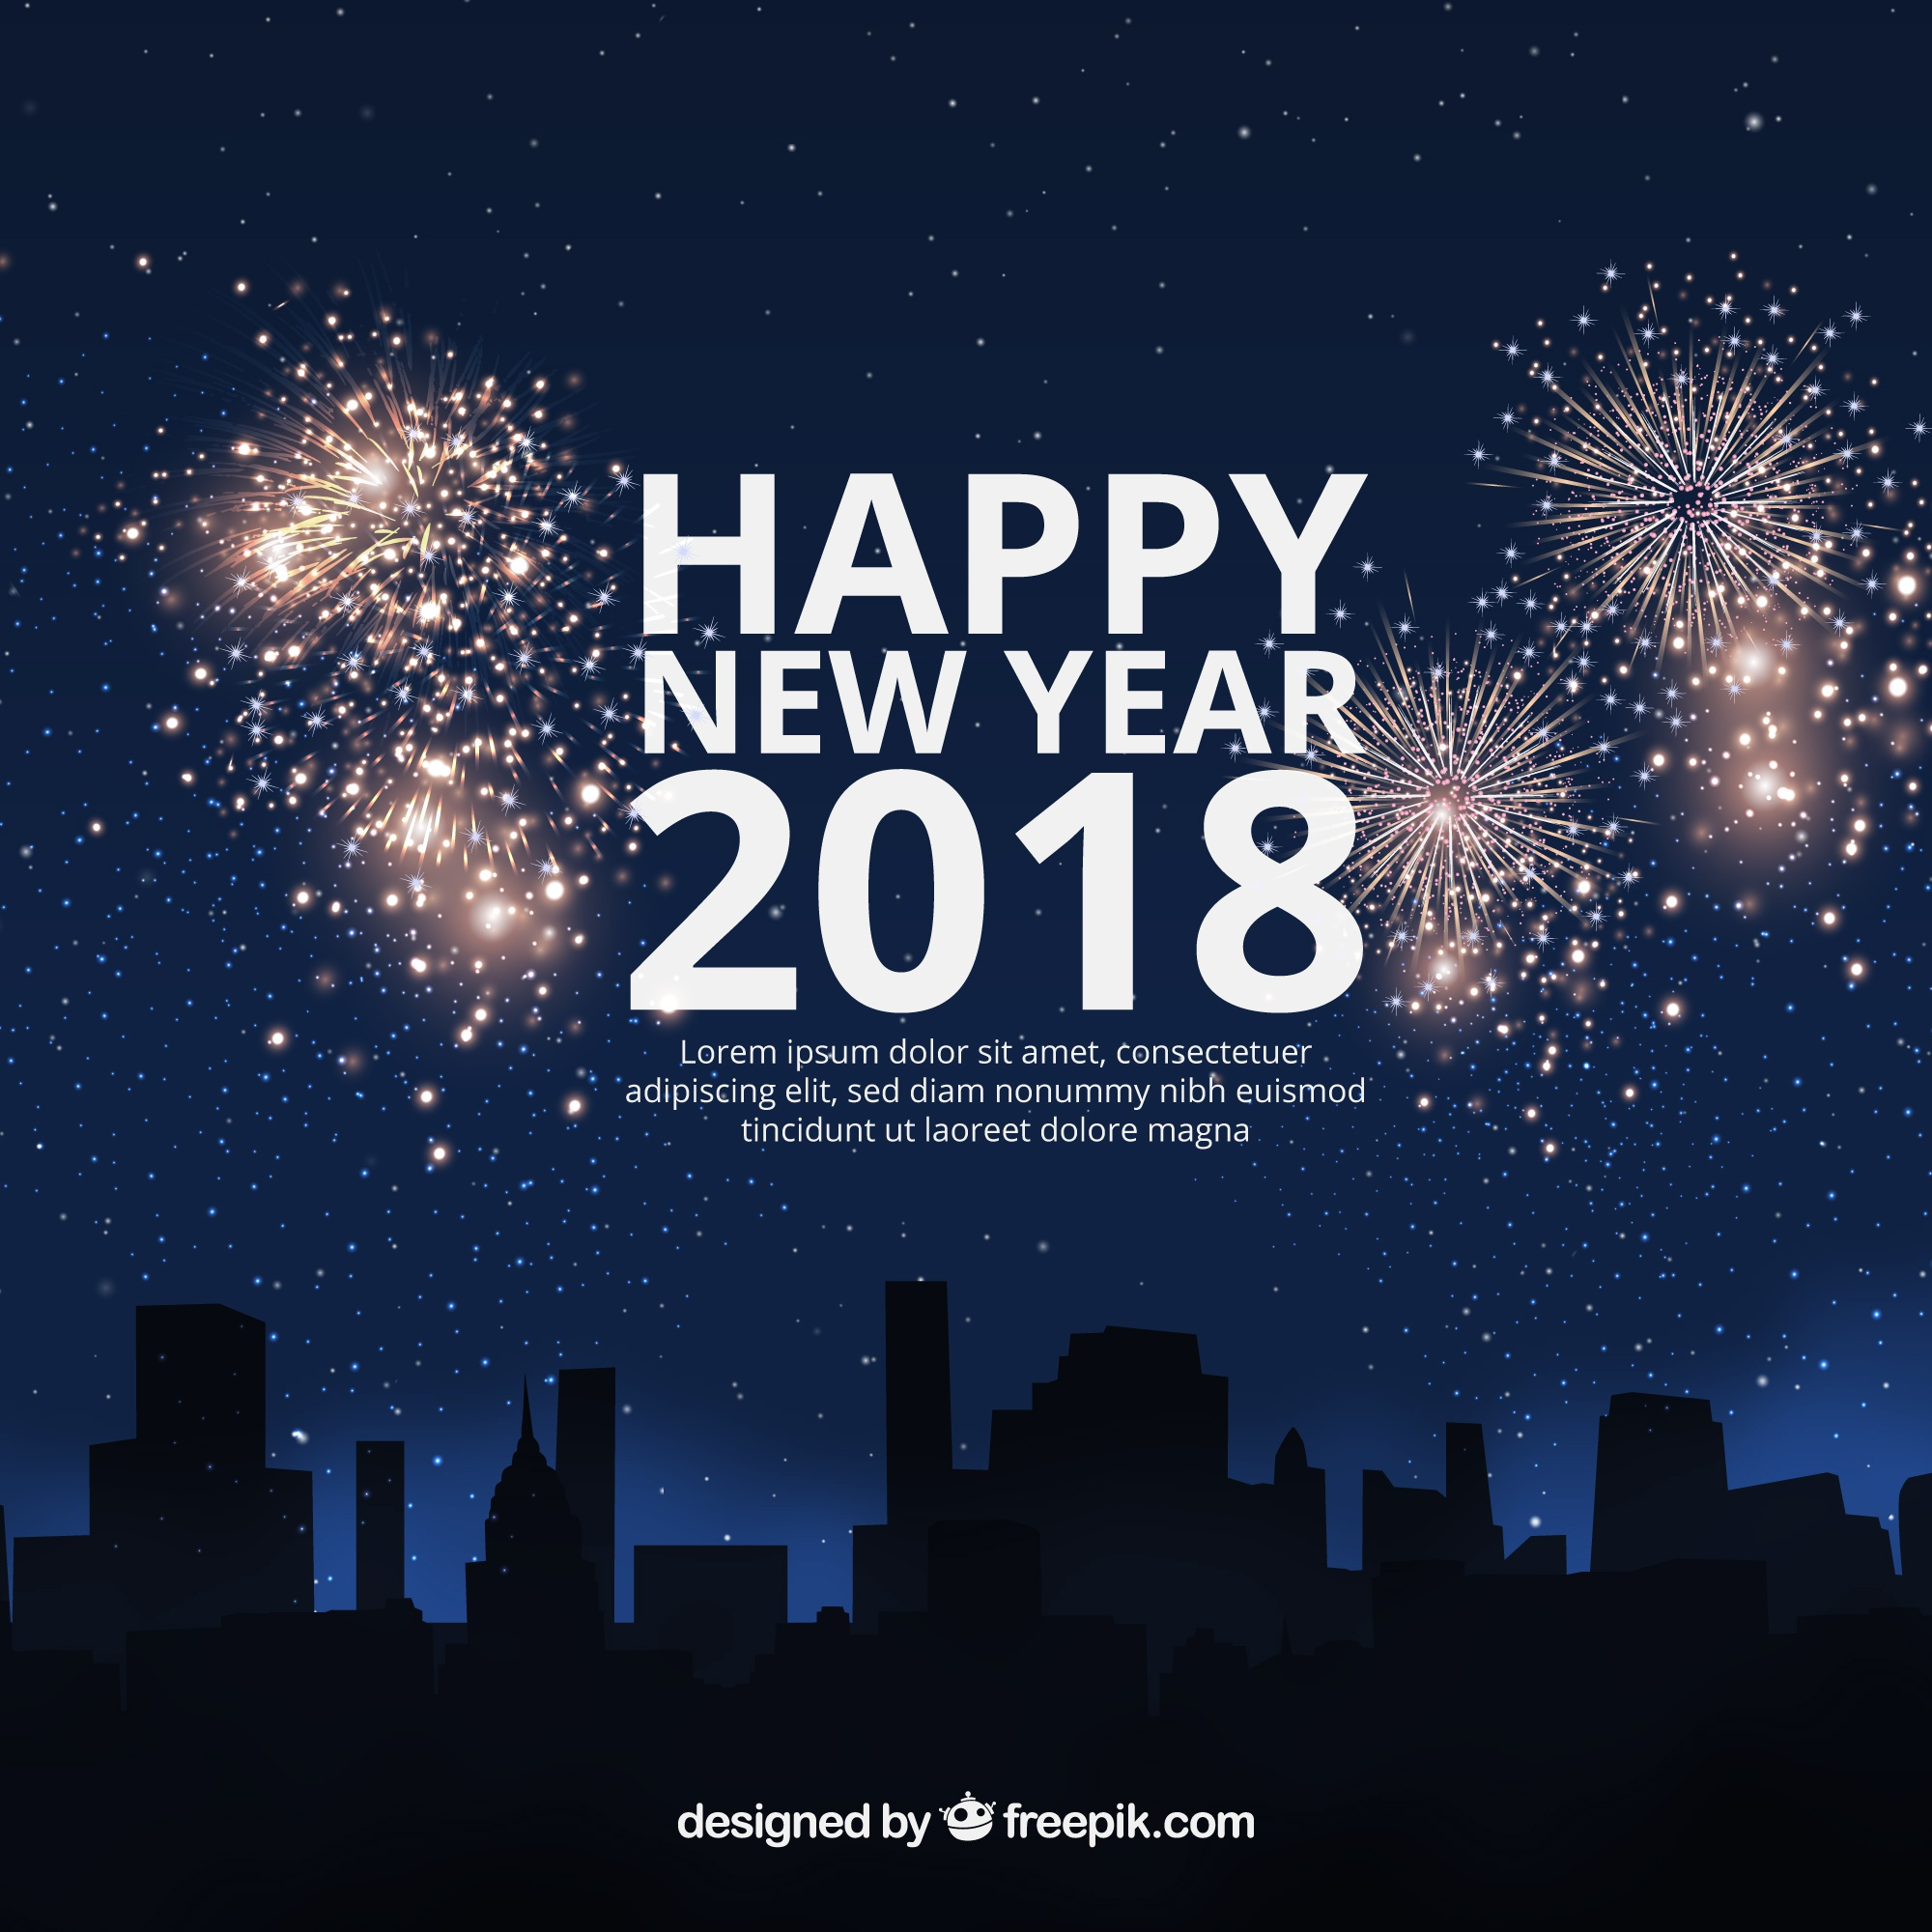 Flat new year 2018 background with fireworks